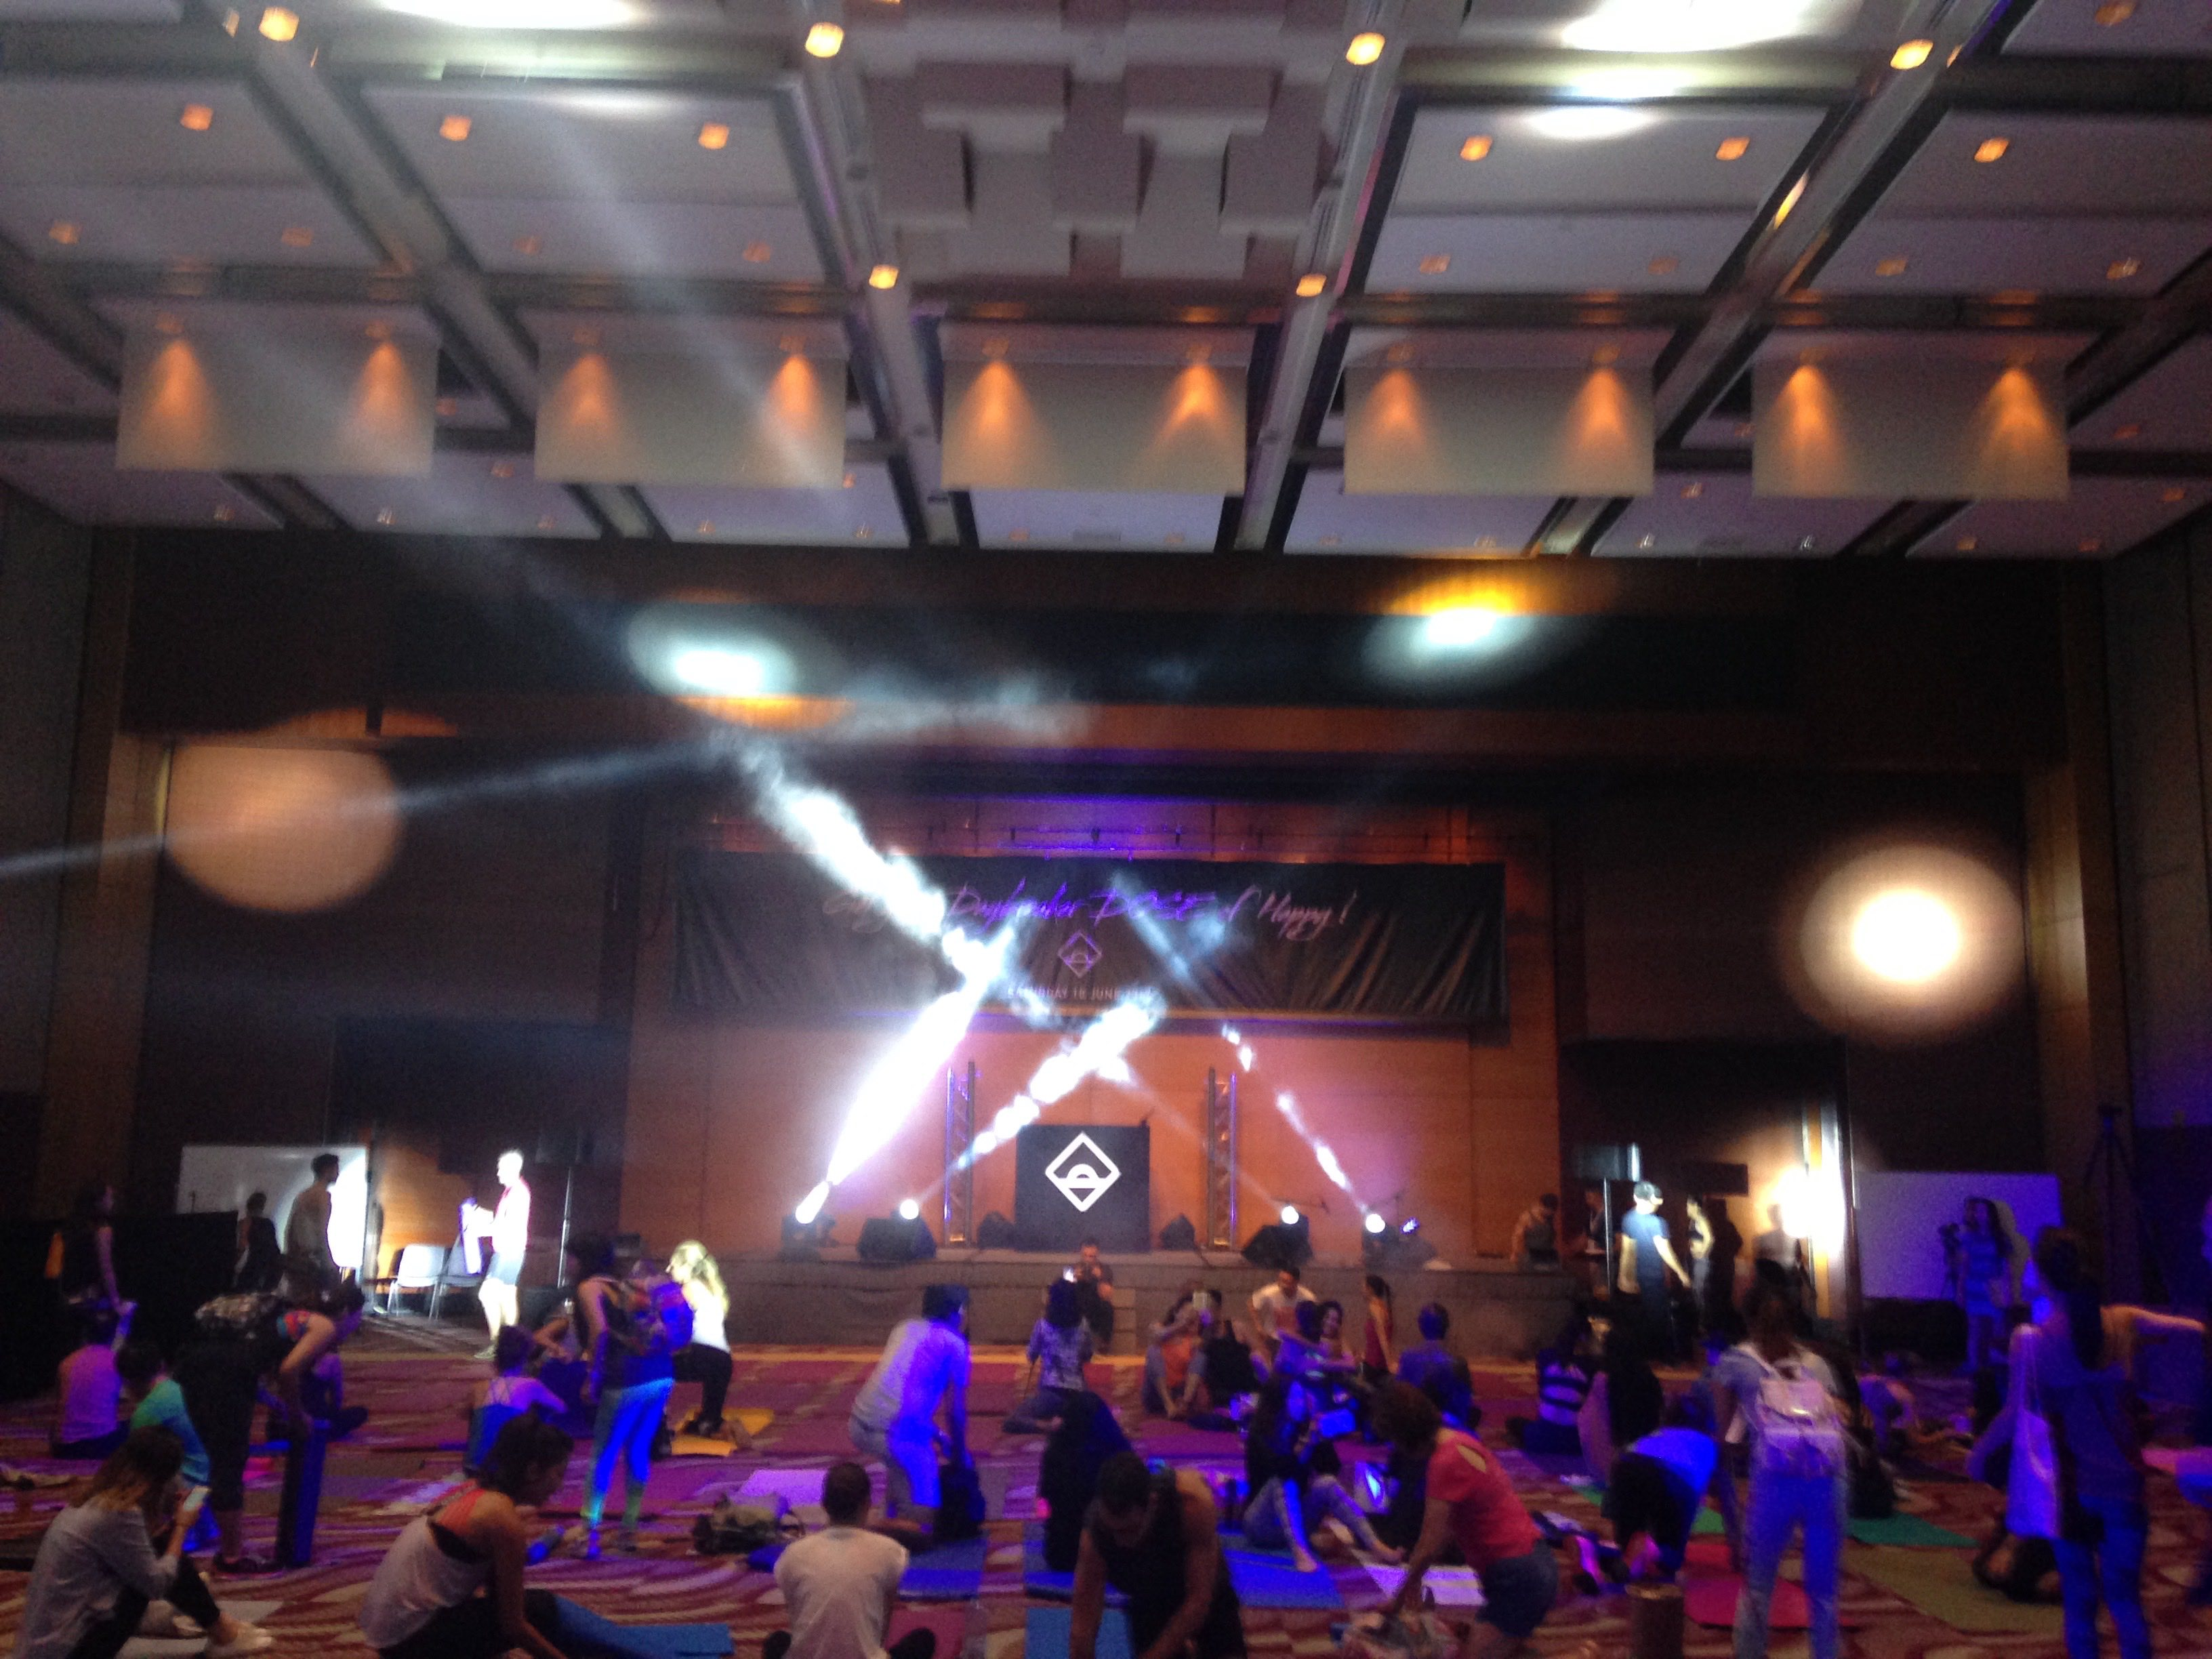 Large hall with people setting up mats amid lazer beams.